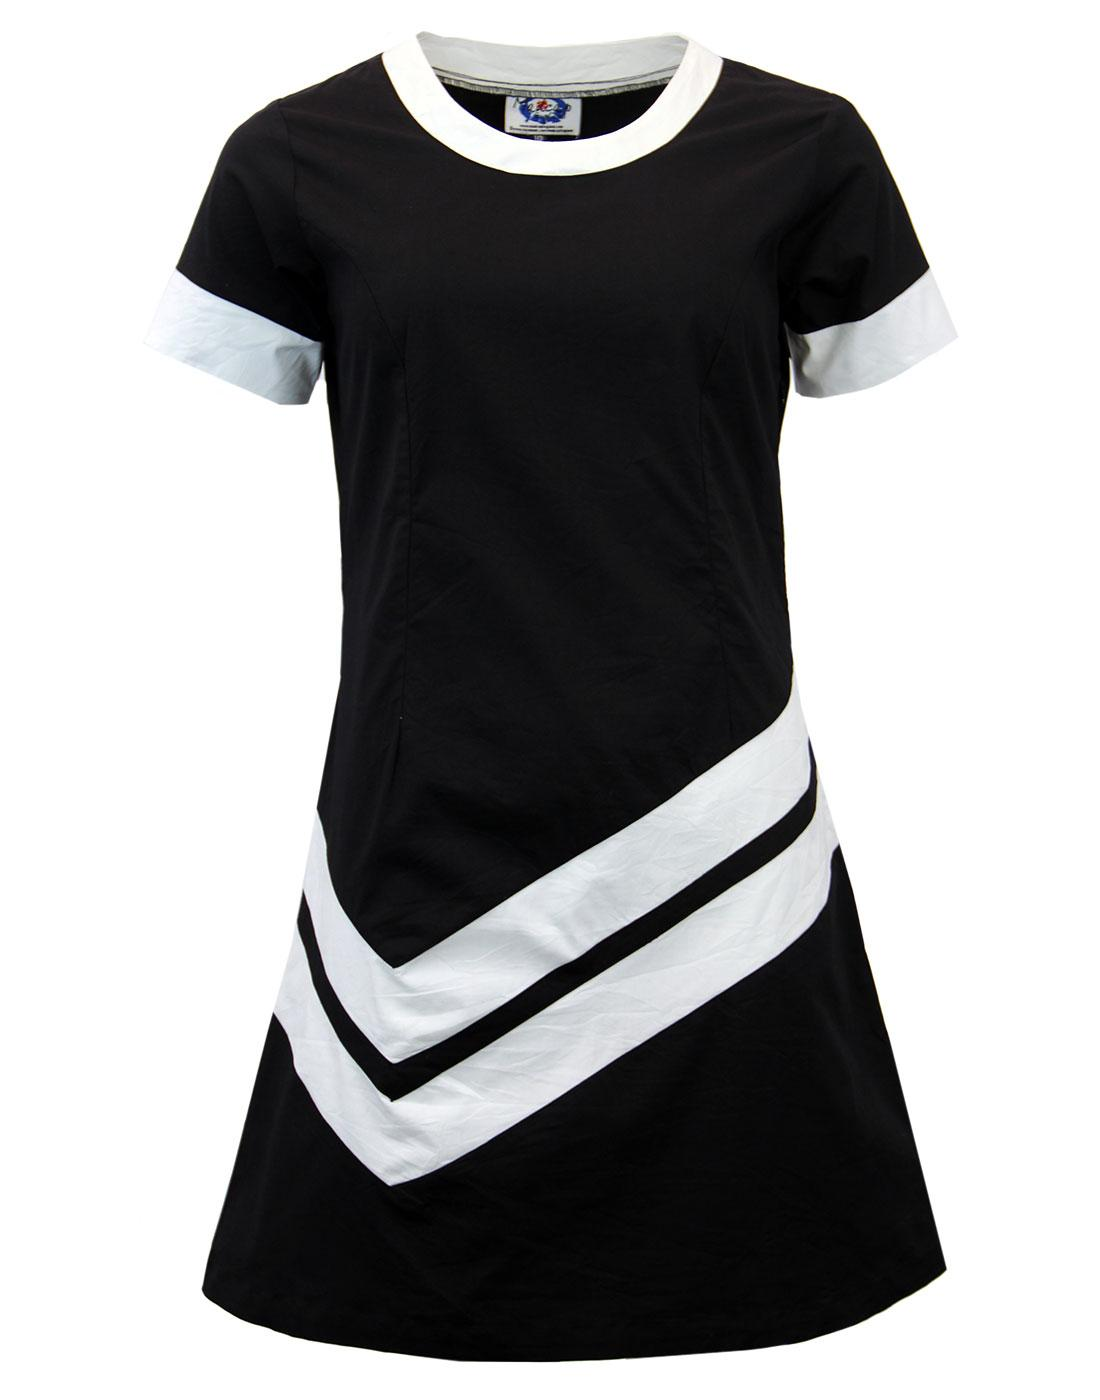 S Mod Fashion Black And White Dress